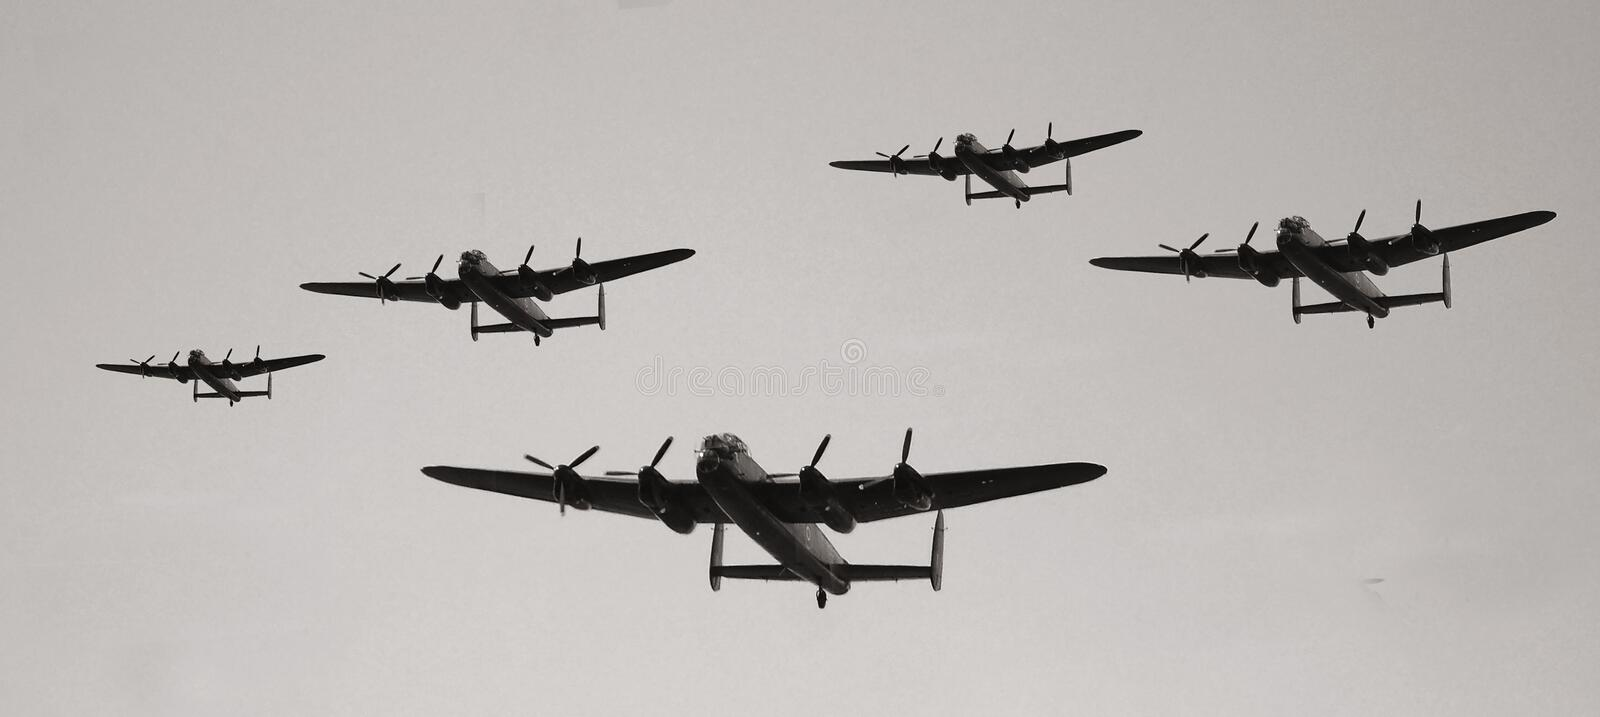 Vintage military aircraft royalty free stock photos